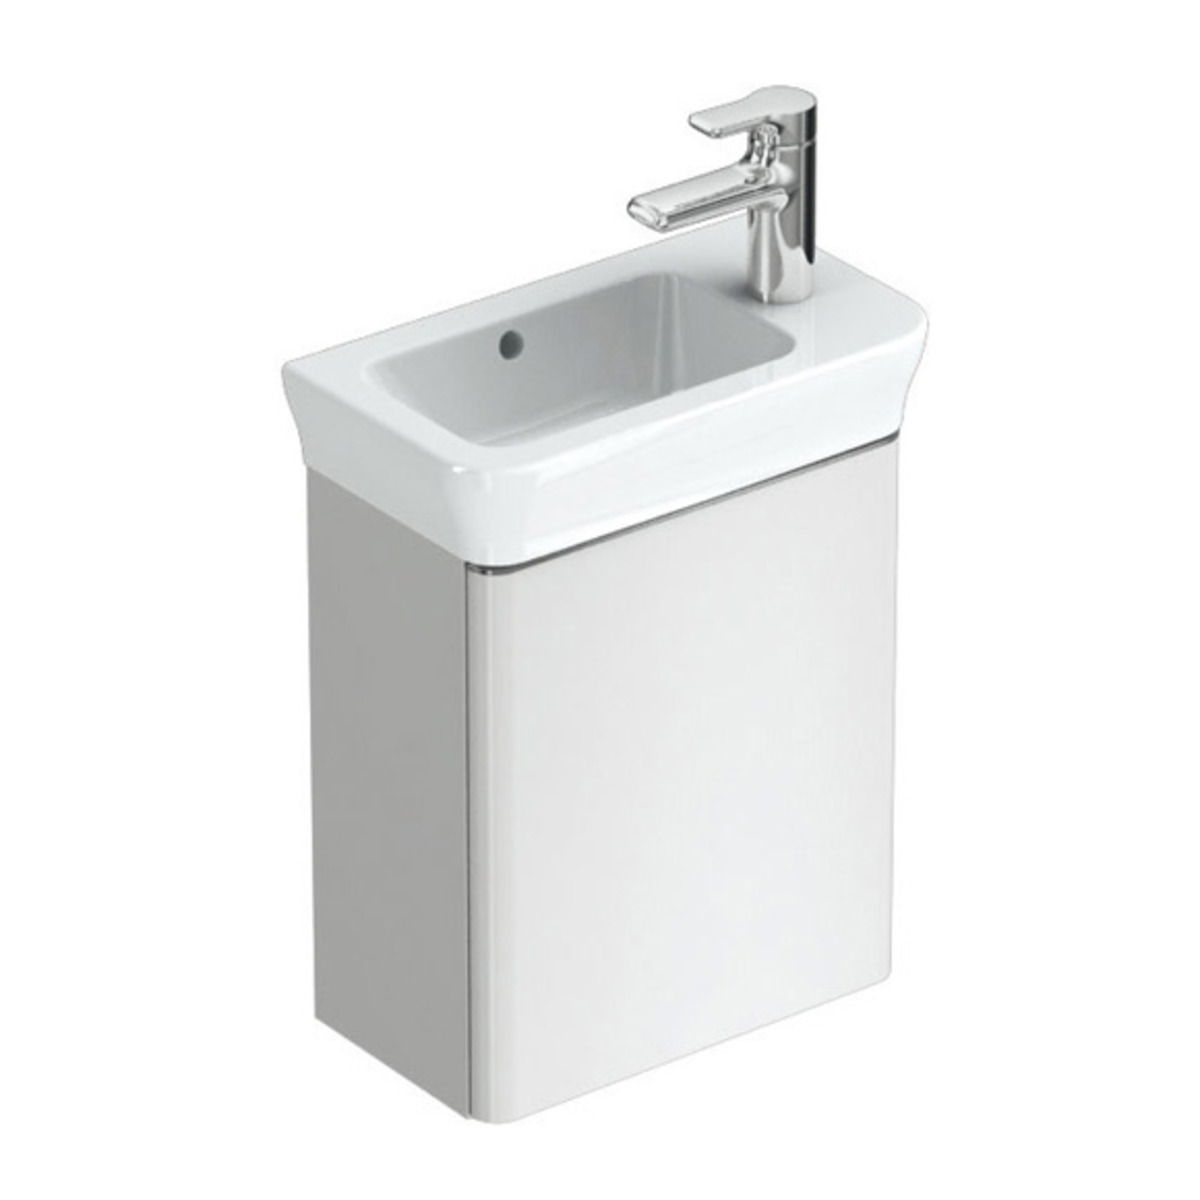 Ideal standard softmood meuble sous lave mains for Meuble sous lave mains